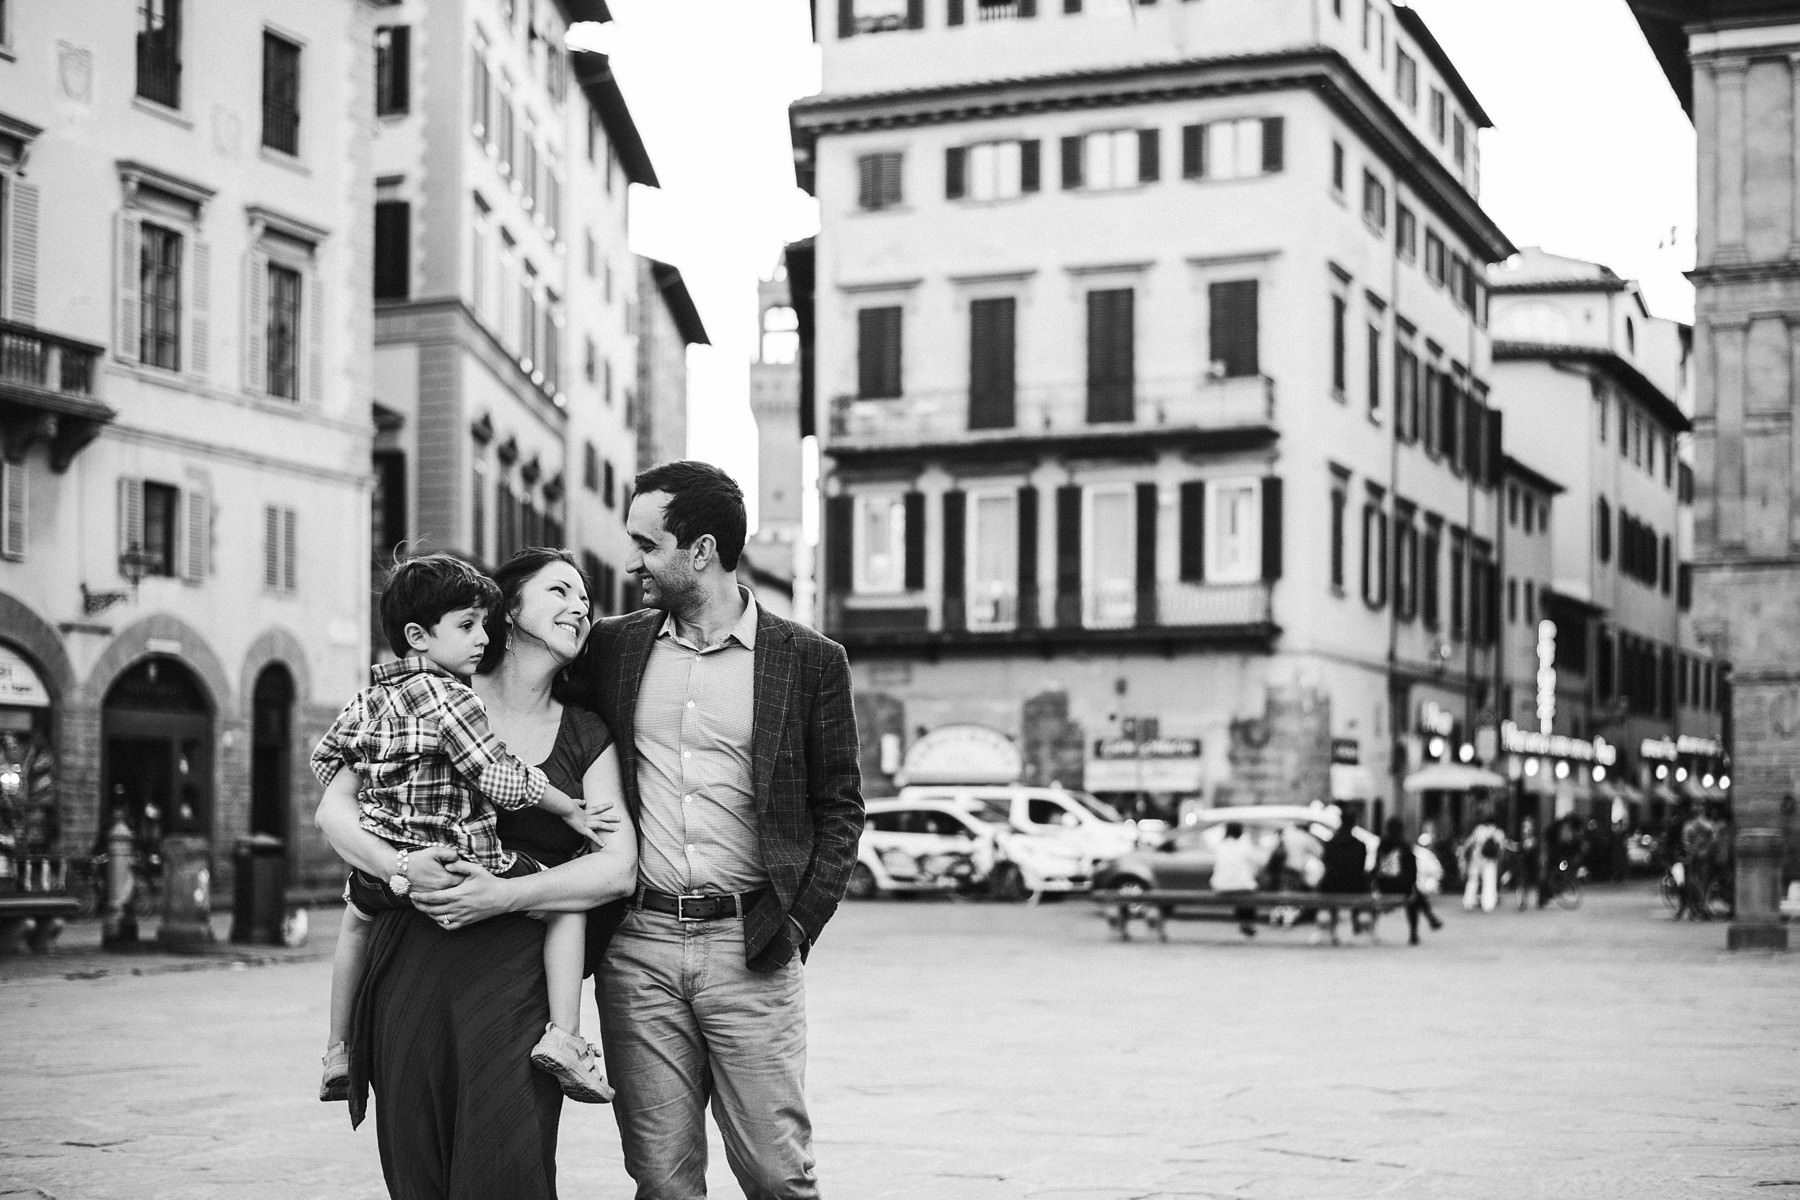 Gorgeous family time in Piazza Santa Croce during family photo service in Florence